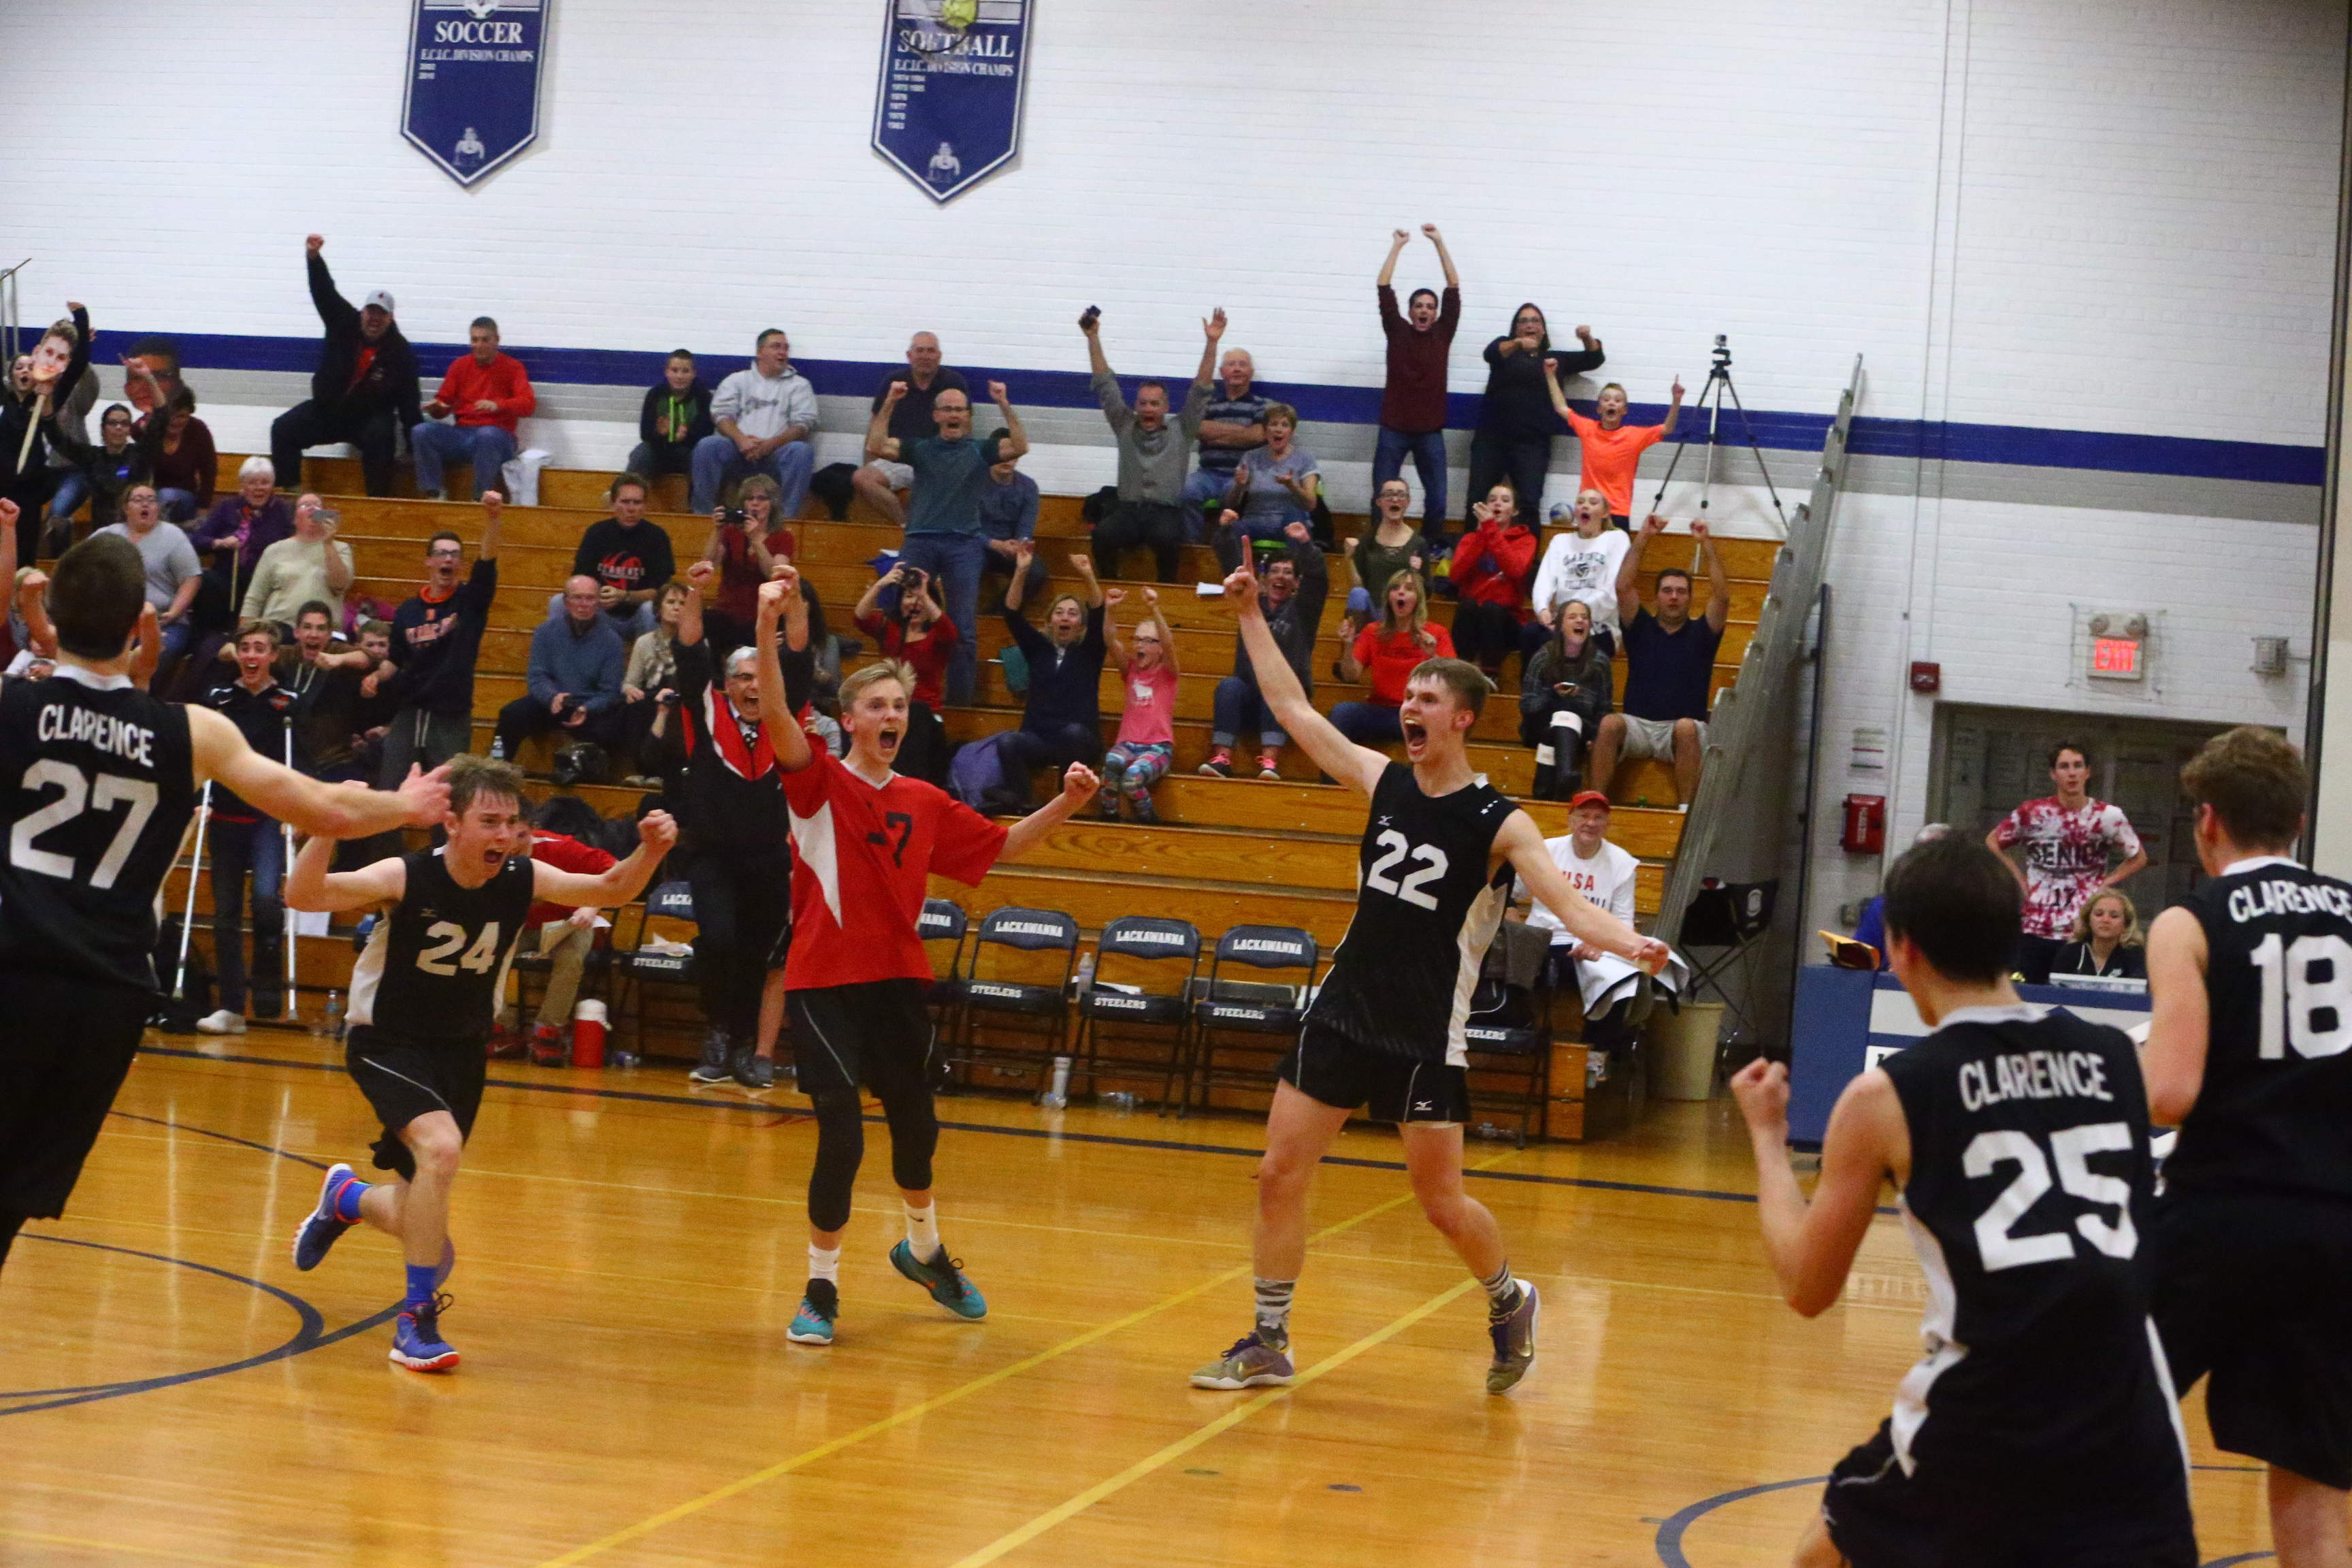 Clarence celebrates its win over Lockport in the Section VI Division I boys volleyball championships at  Lackawanna. (John Hickey/Buffalo News)